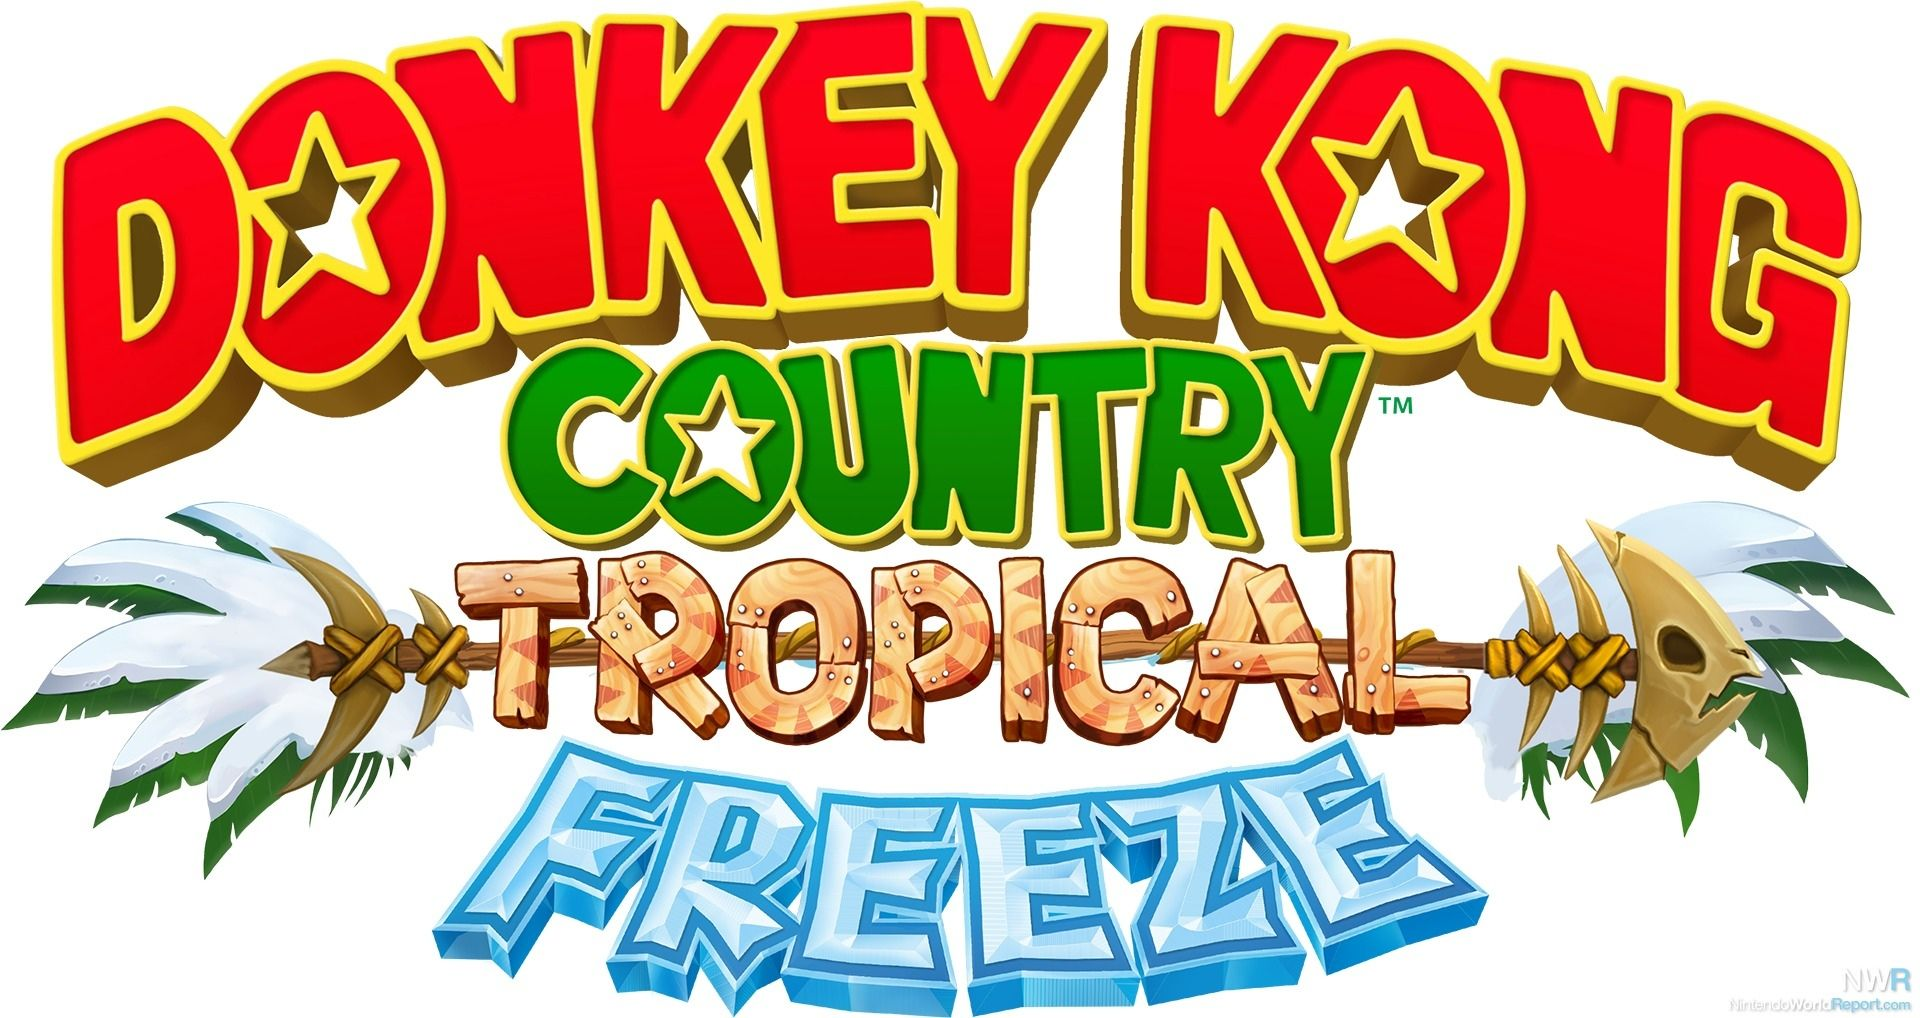 Video Game Donkey Kong Country Tropical Freeze Wallpaper Donkey